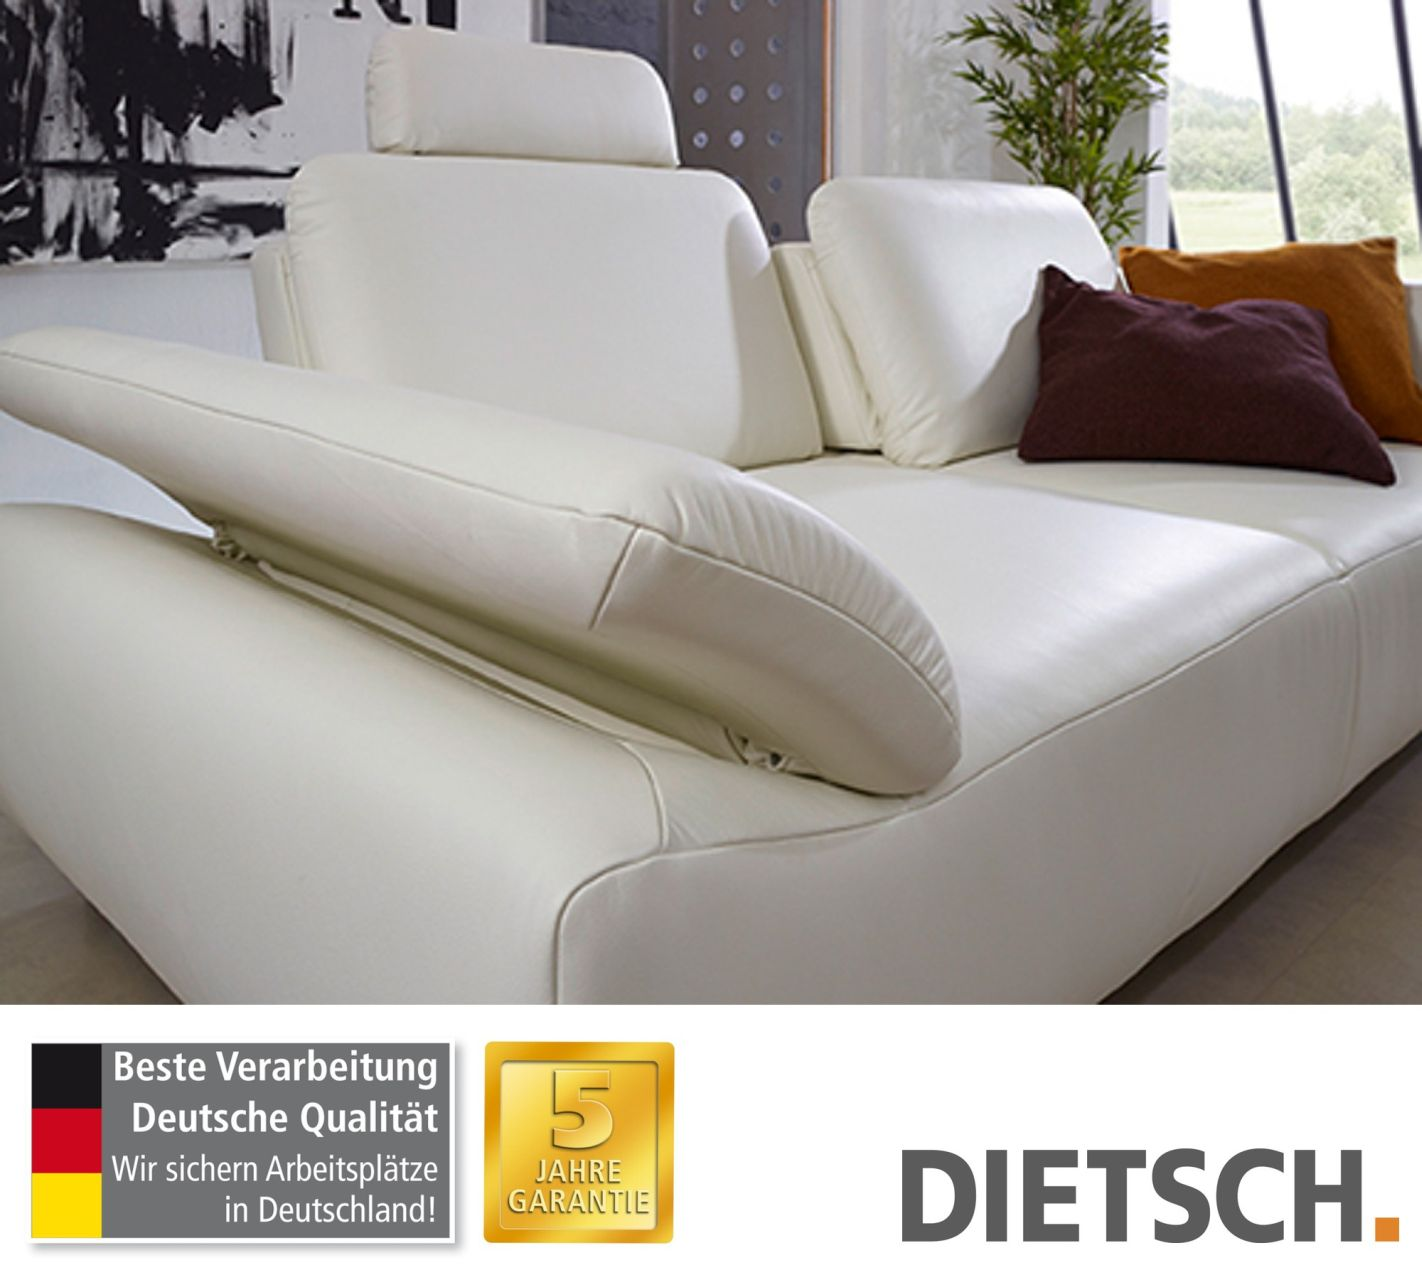 DIETSCH - quality upholstery